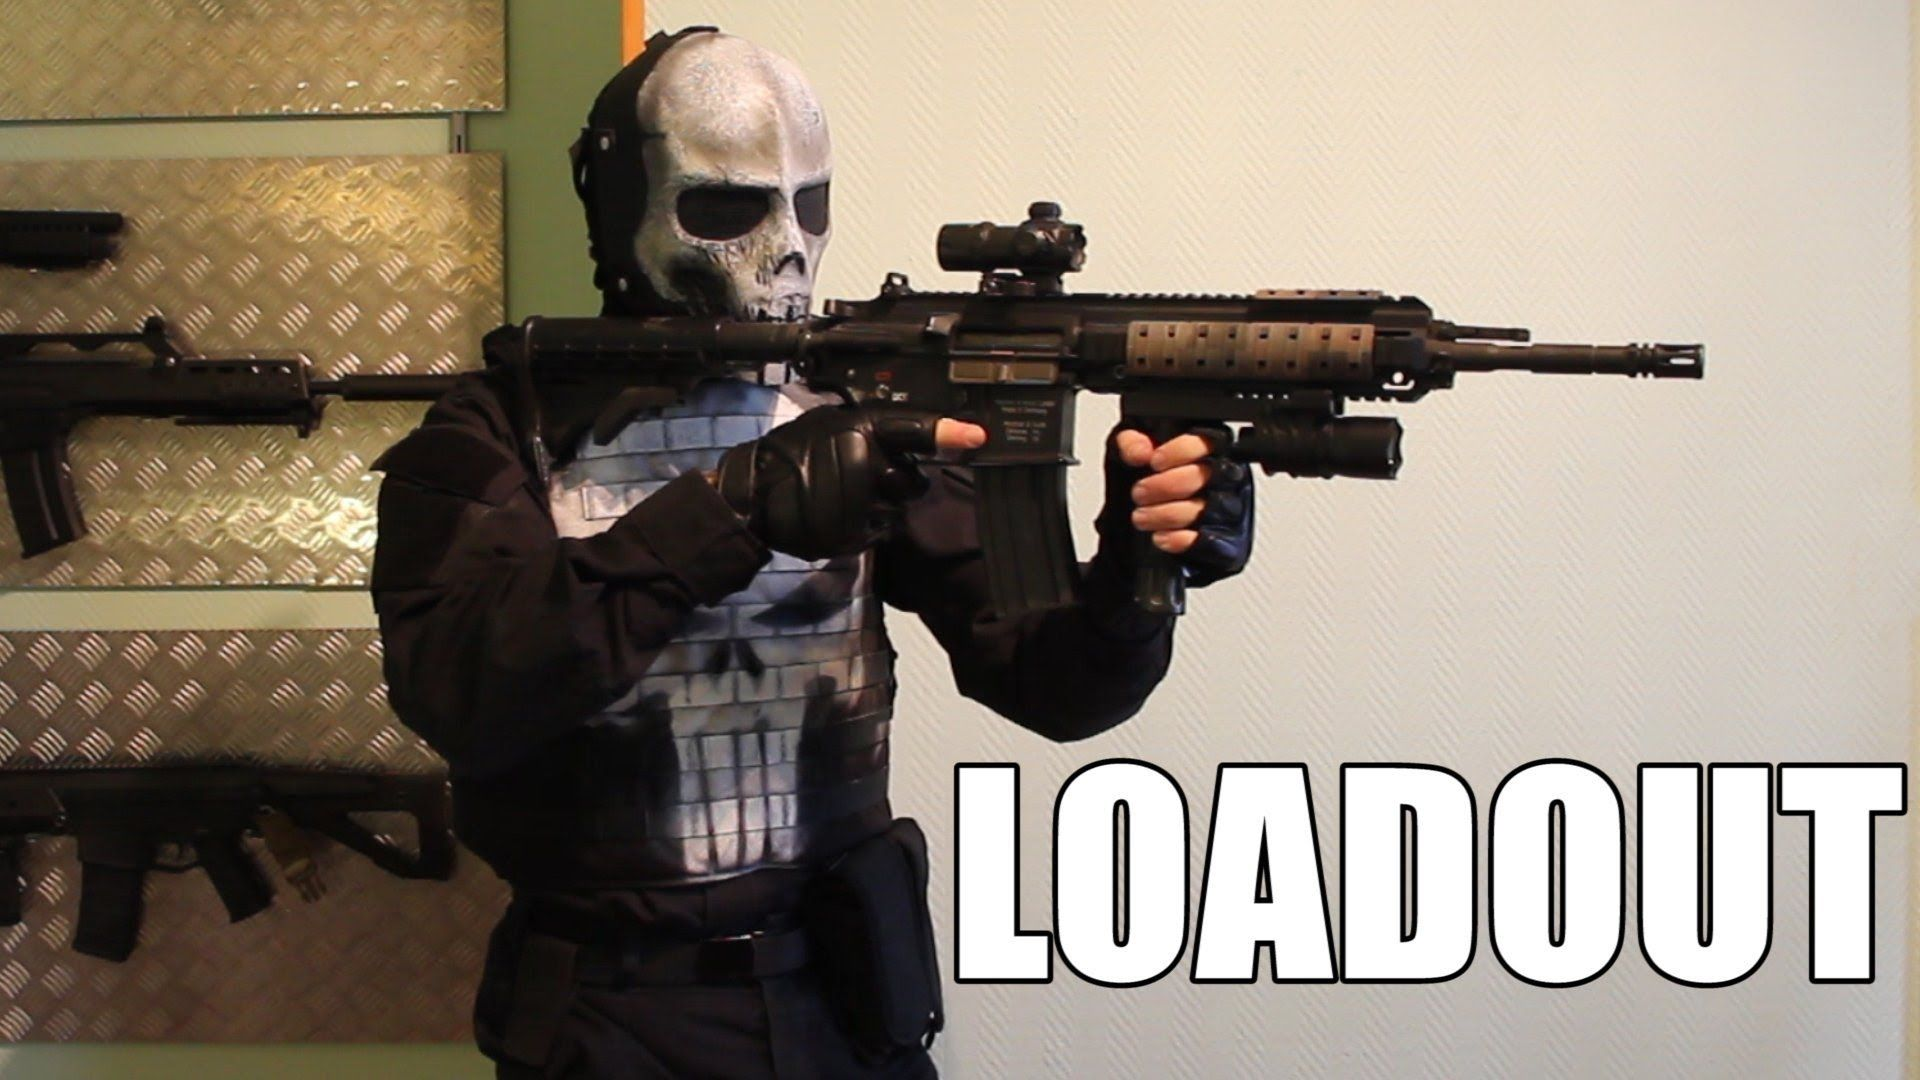 Punisher airsoft loadout Punisher Airsoft Firearms 1920x1080